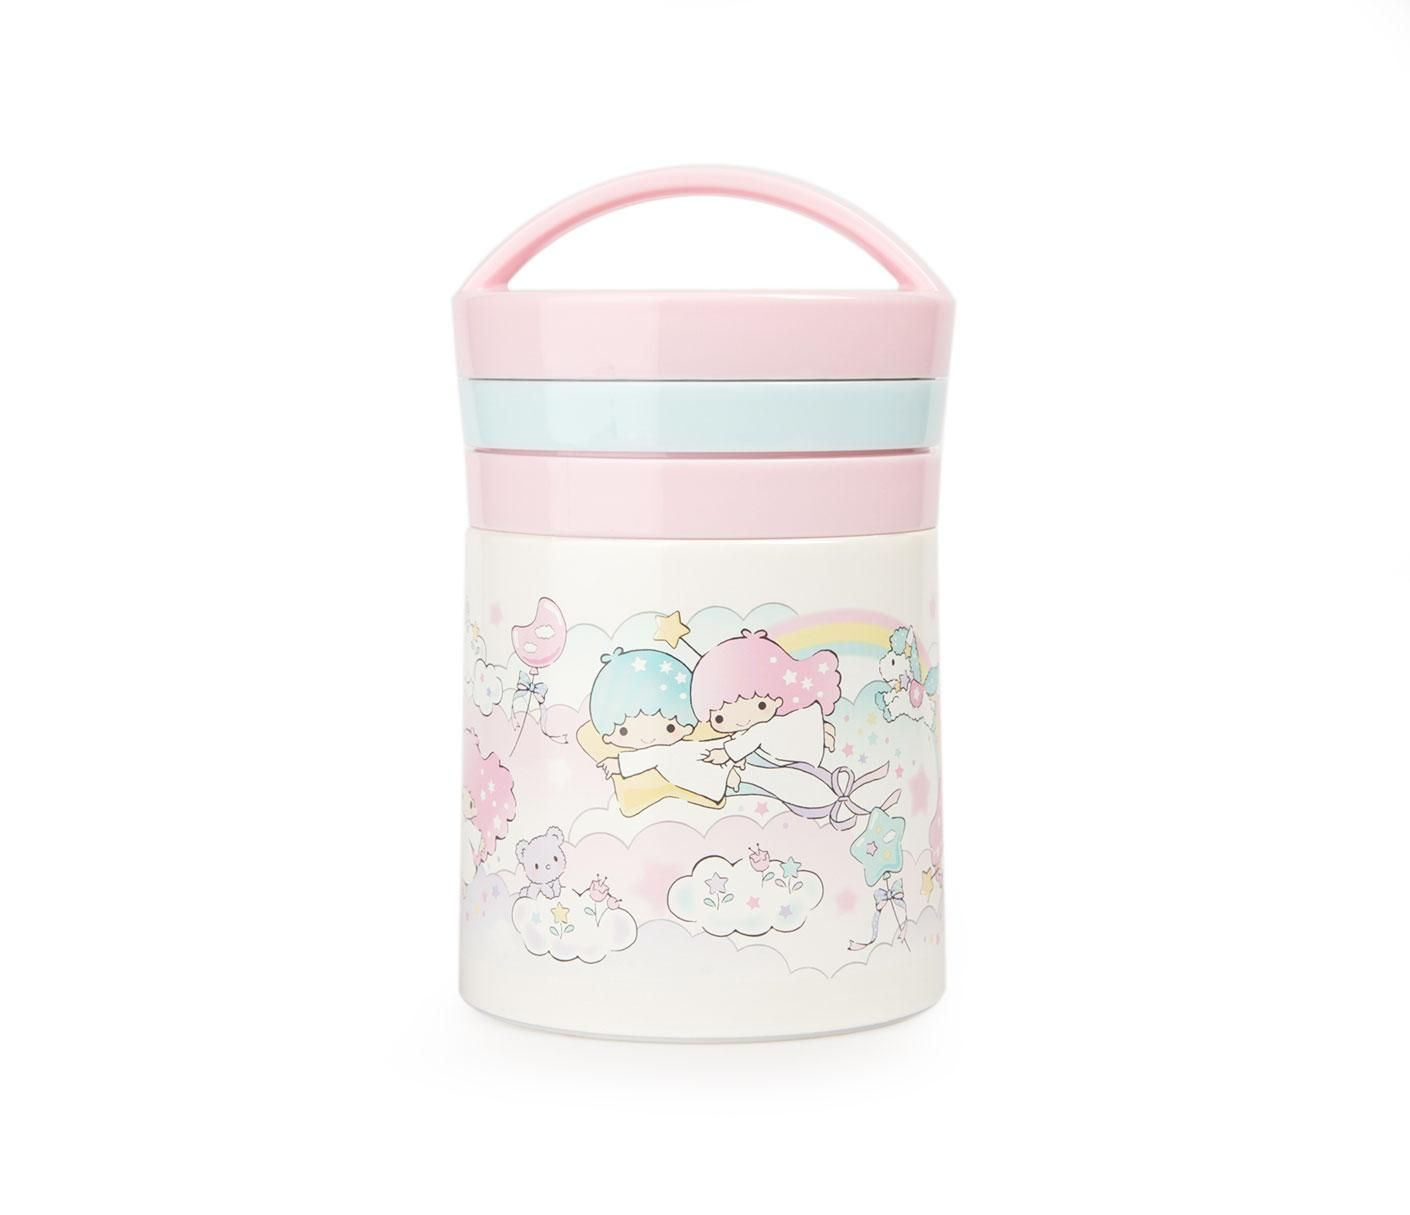 Little Twin Stars Stainless Steel Food Jar with Spoon: Cloud